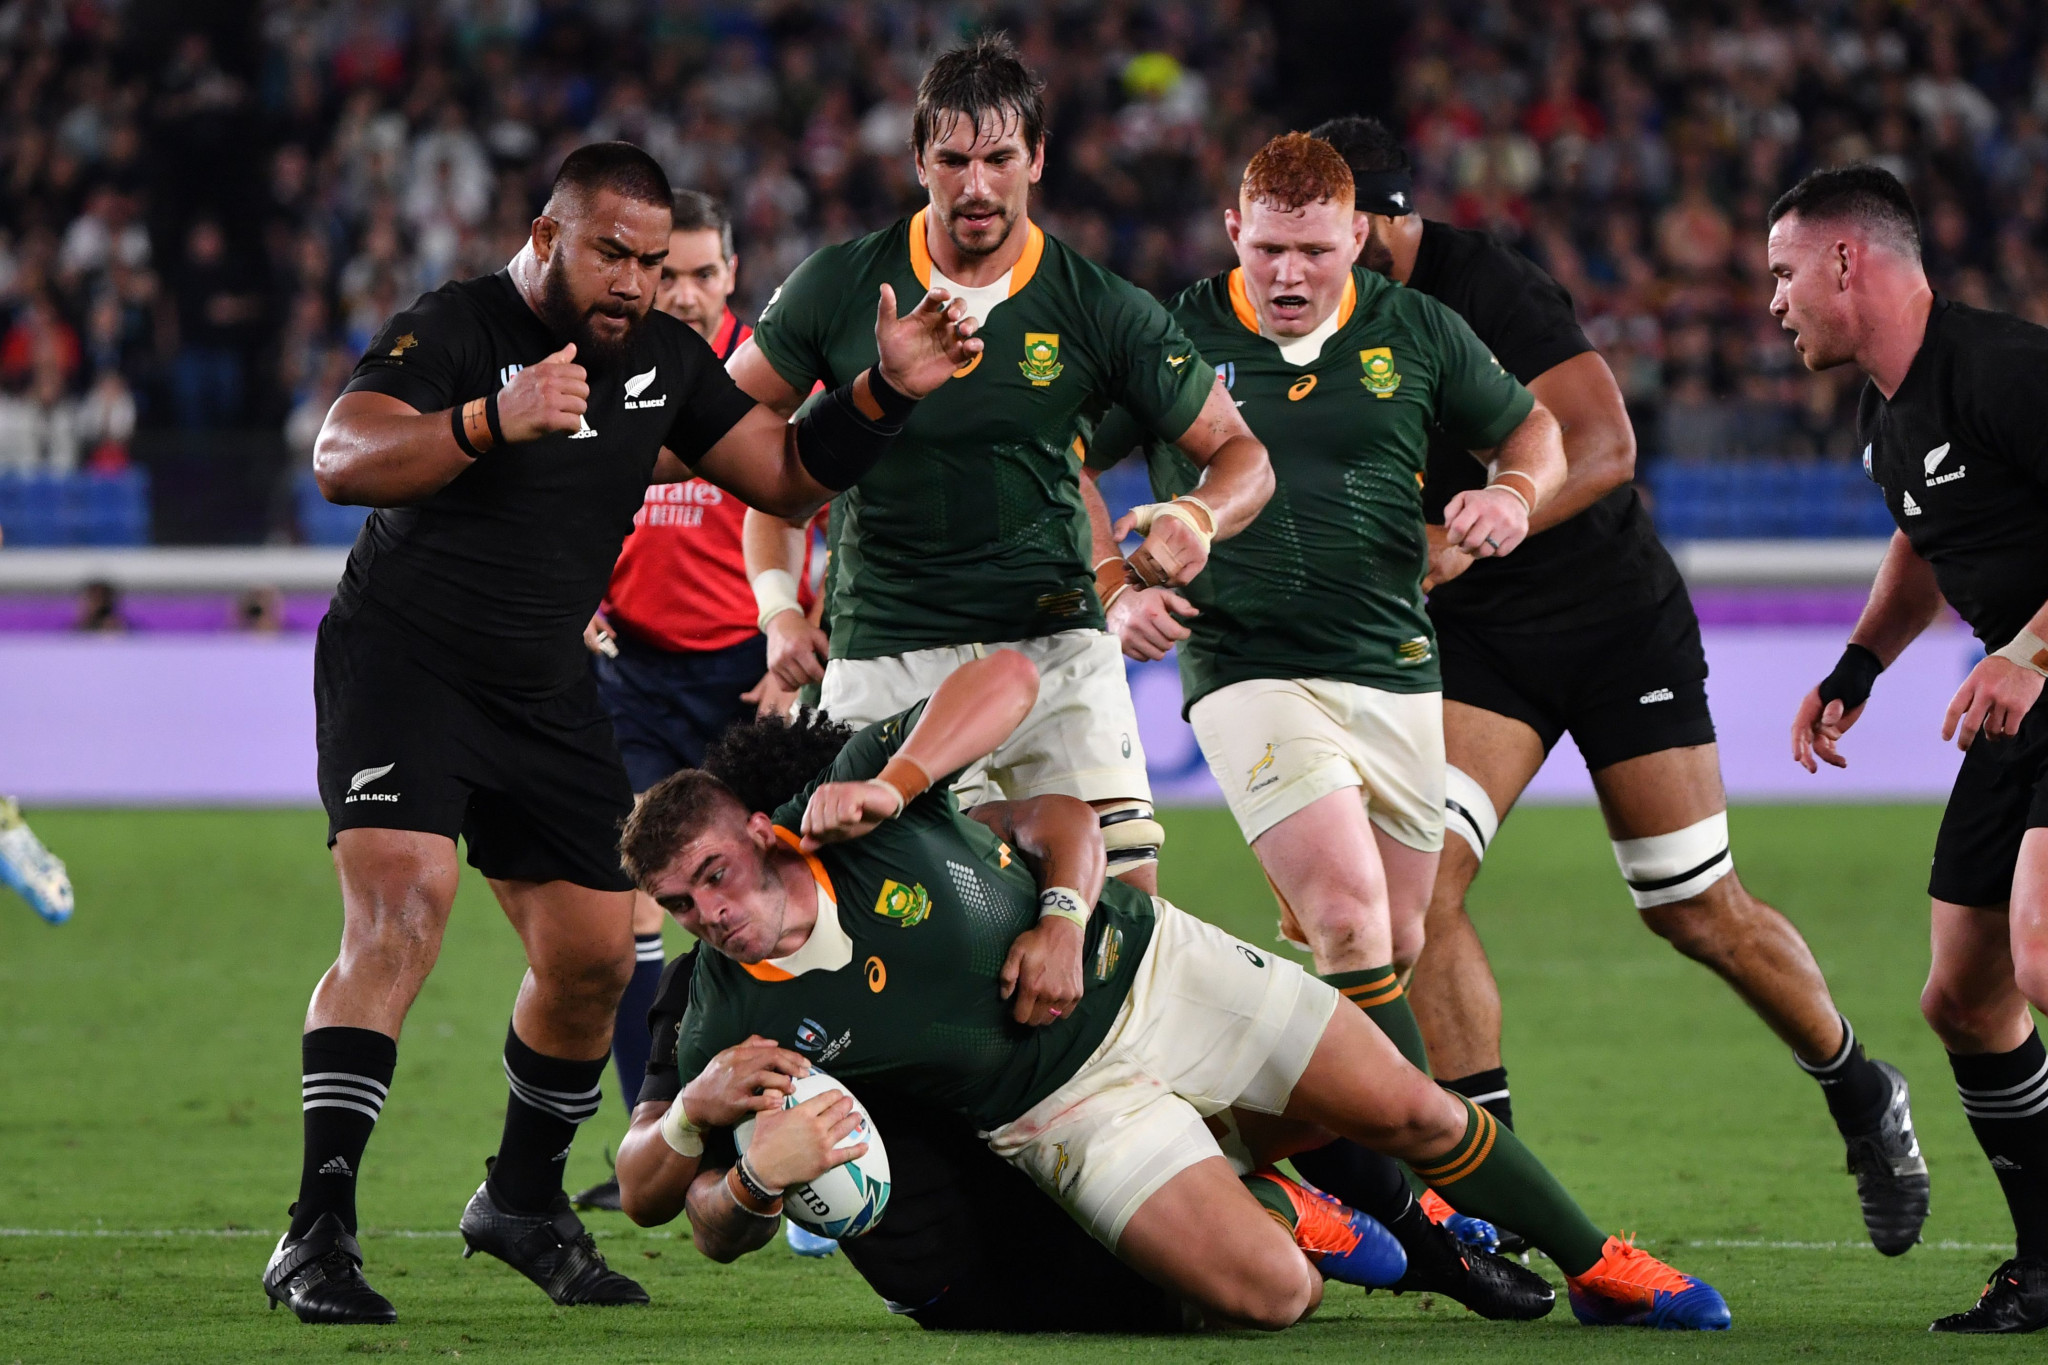 South Africa were hugely competitive but will rue missed opportunities ©Getty Images